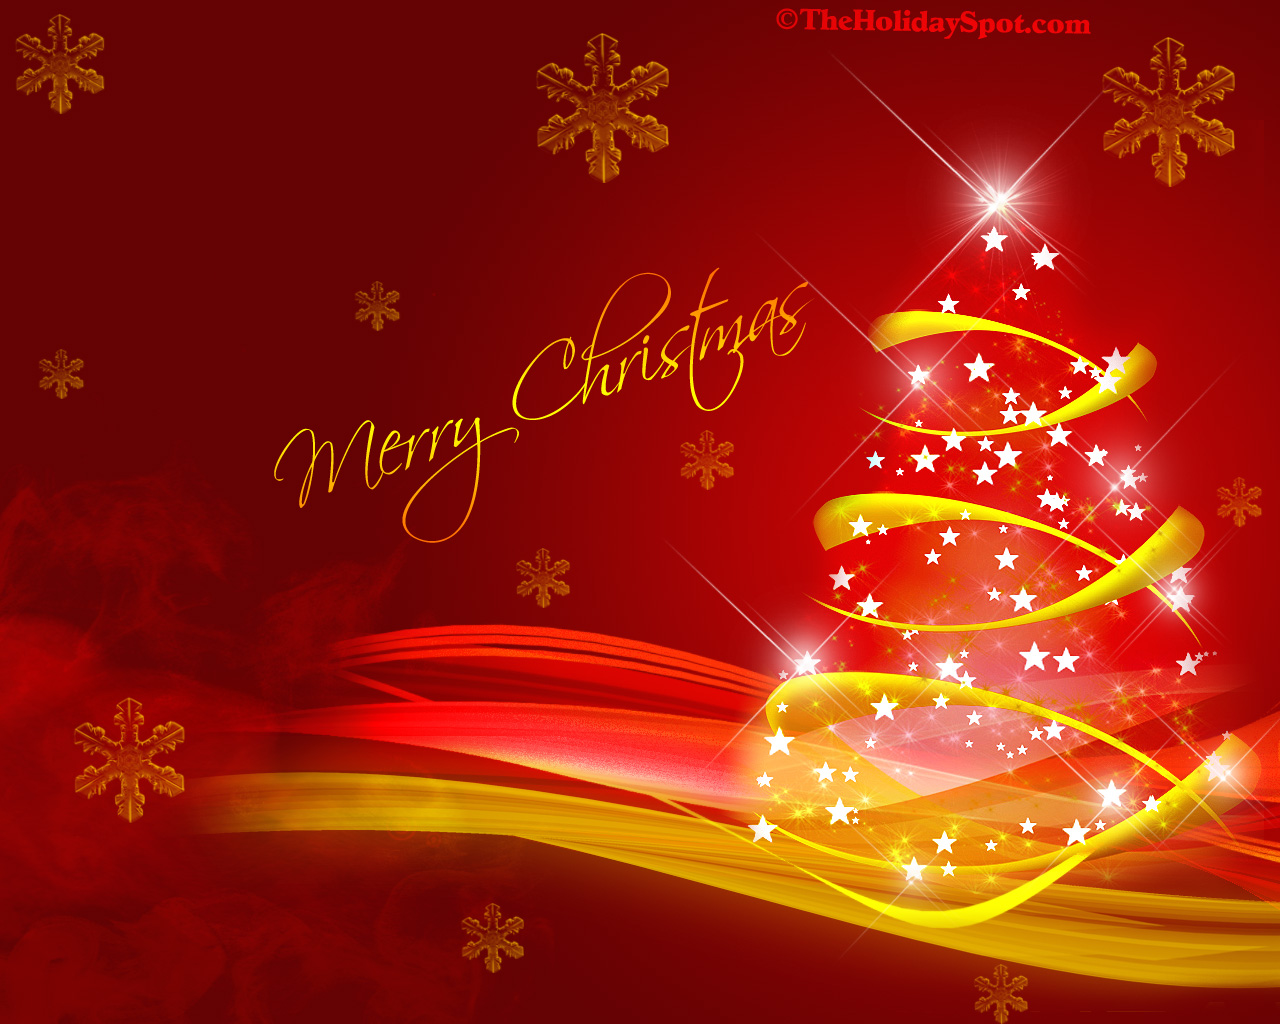 Christmas Hd Wallpaper For Android.Christmas Wallpapers Free Hd Background